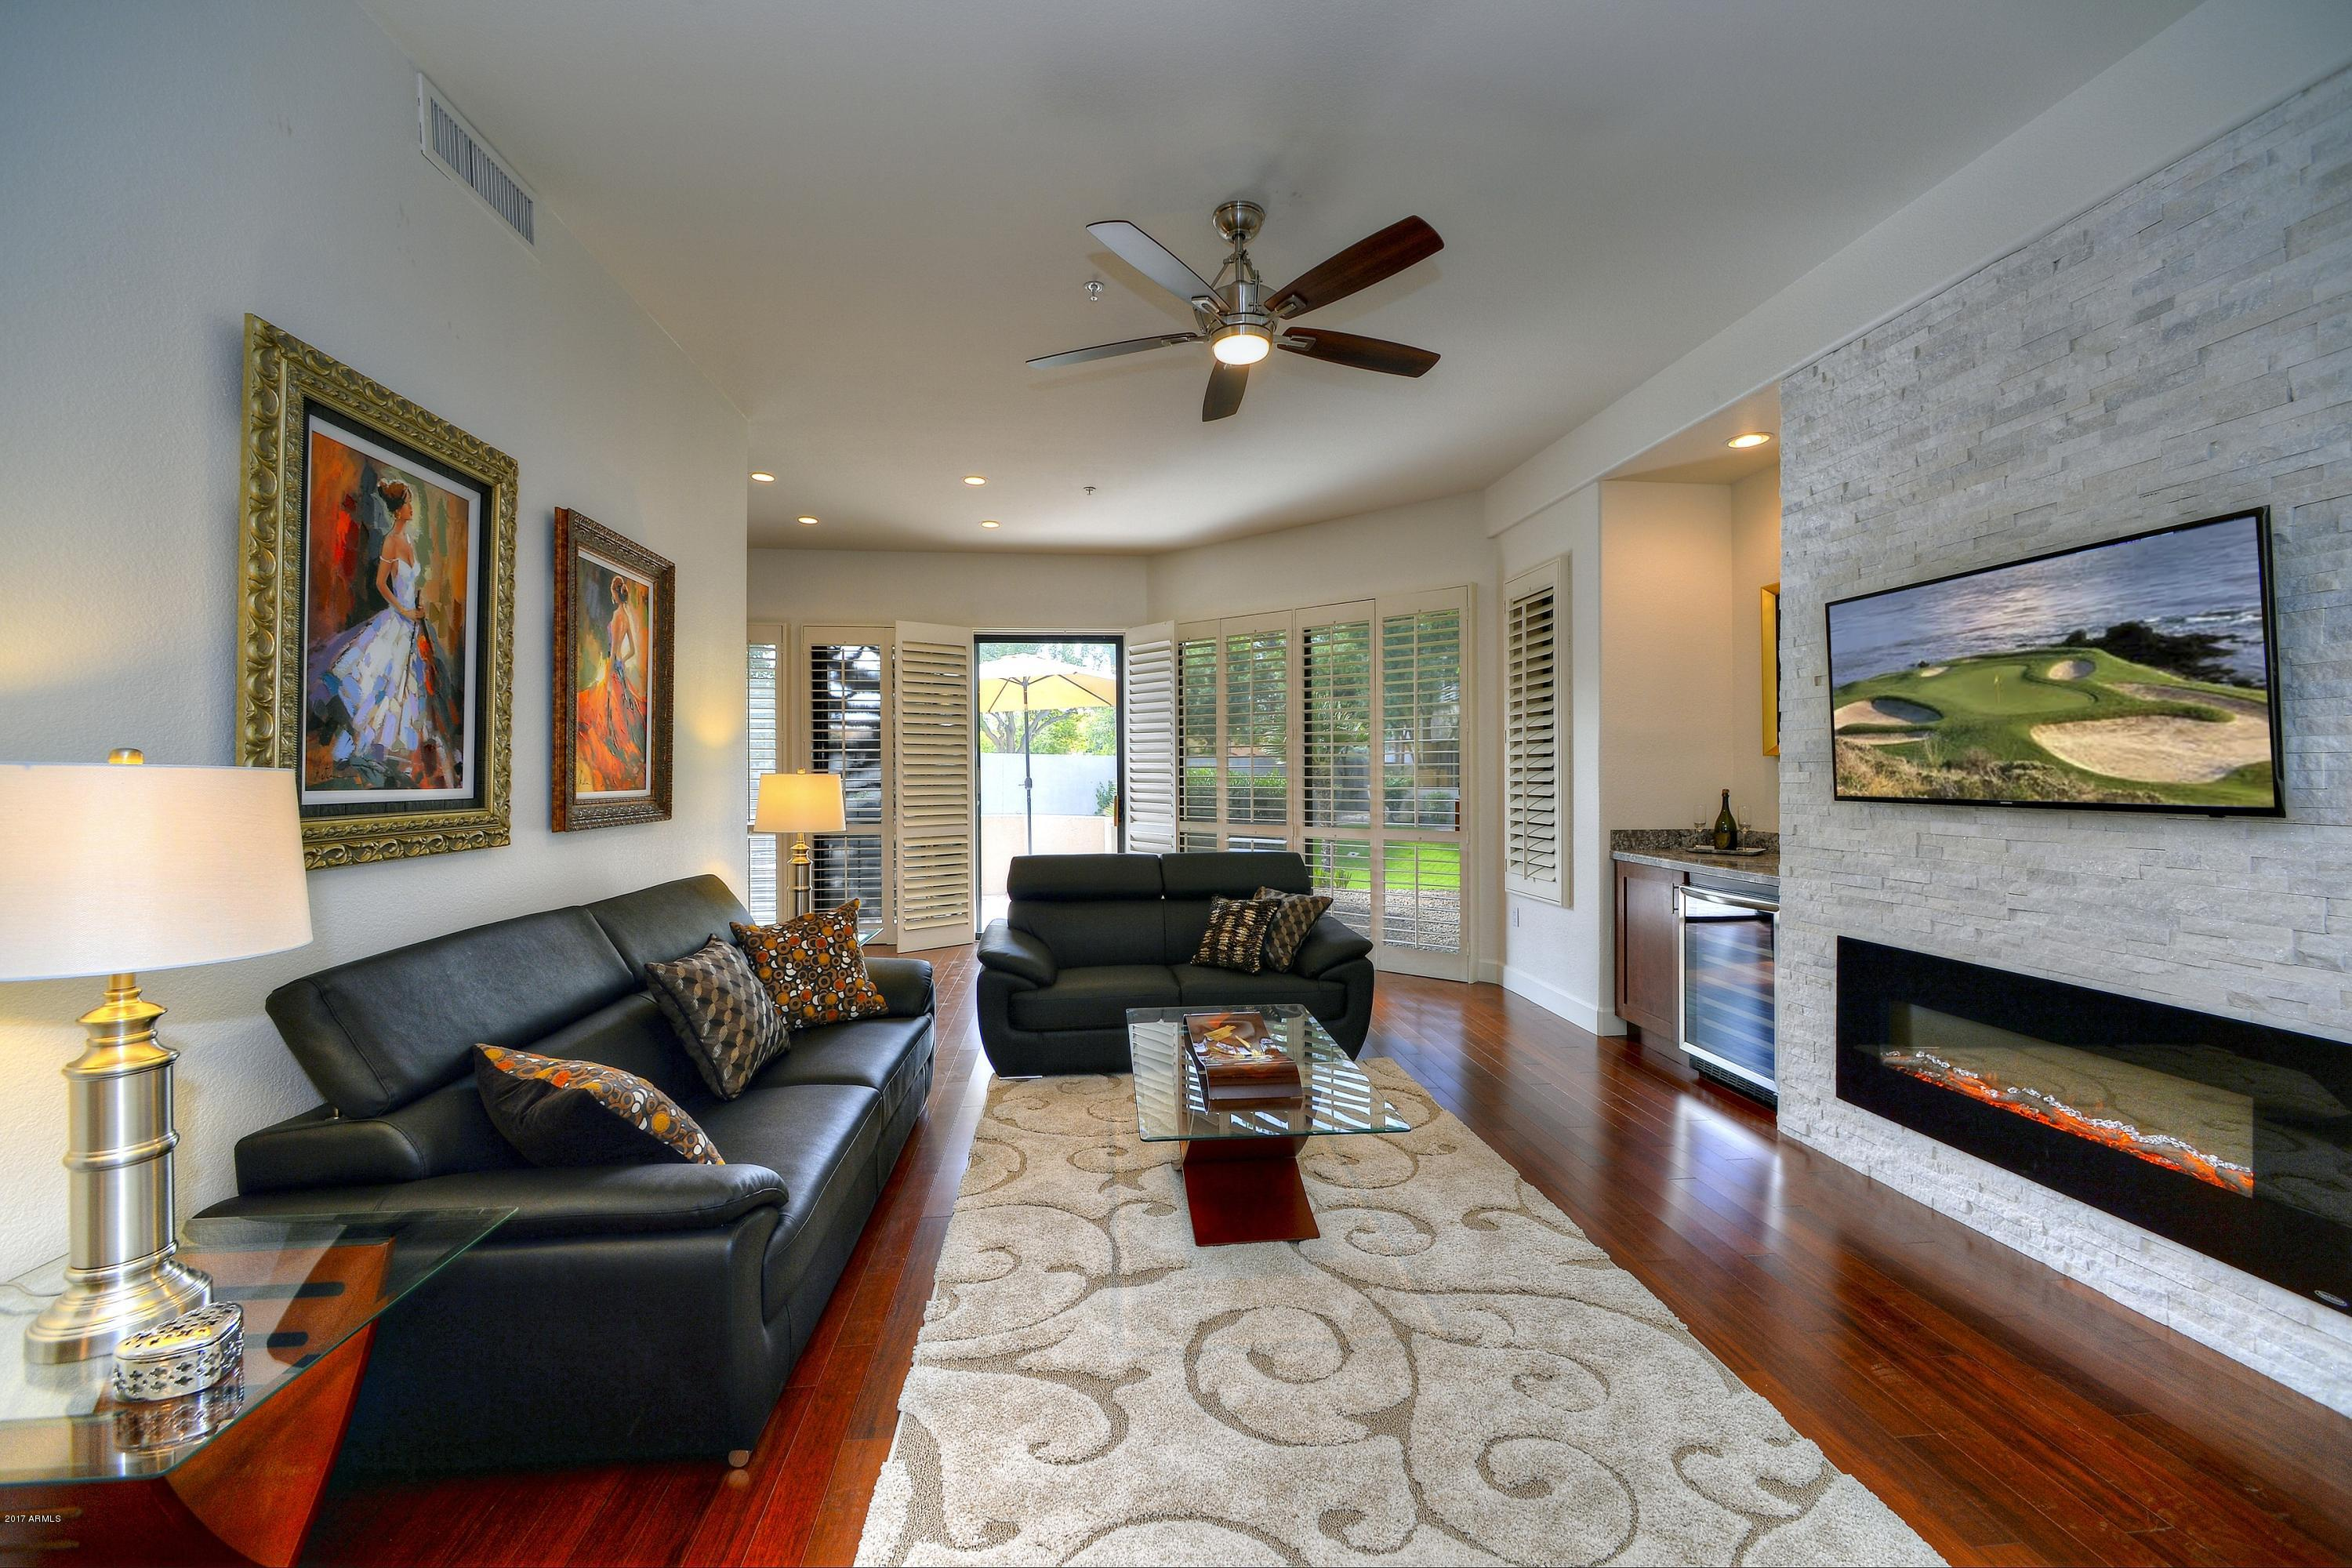 Recently Sold 8989 N Gainey Center Drive Scottsdale 85258